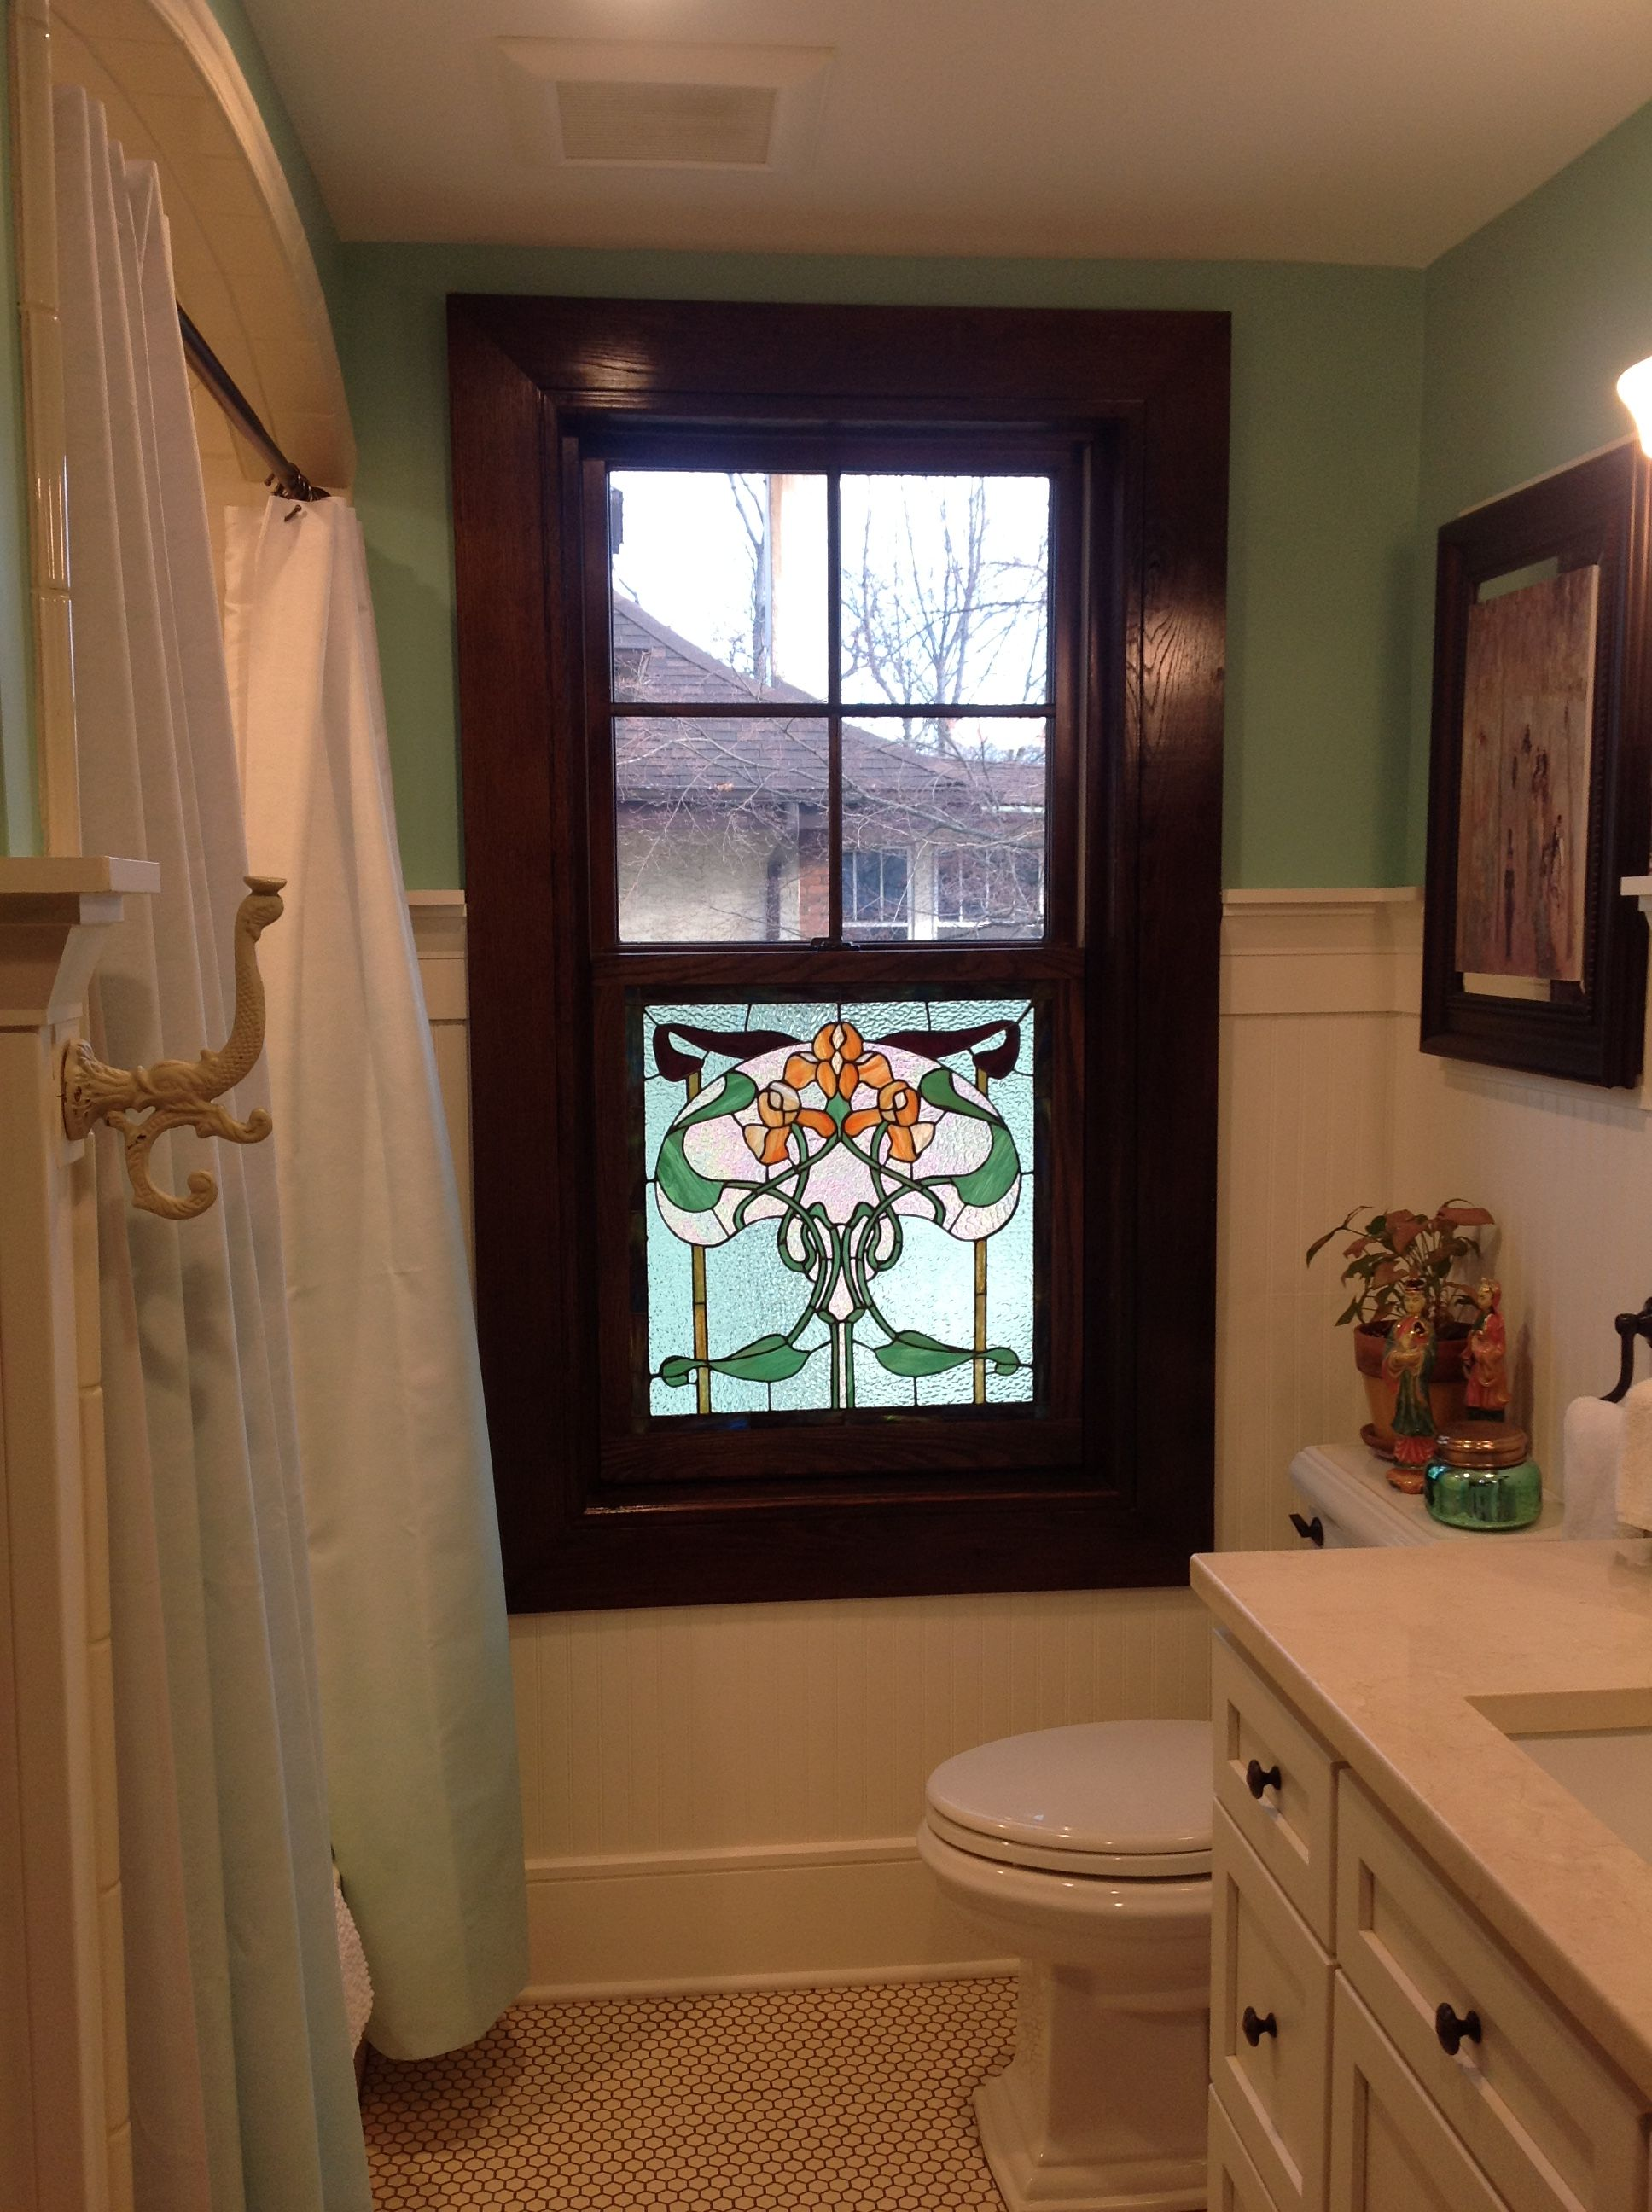 Another Shot Of The Stained Gl Privacy Window For Second Floor Bathroom Made With My Own Hands